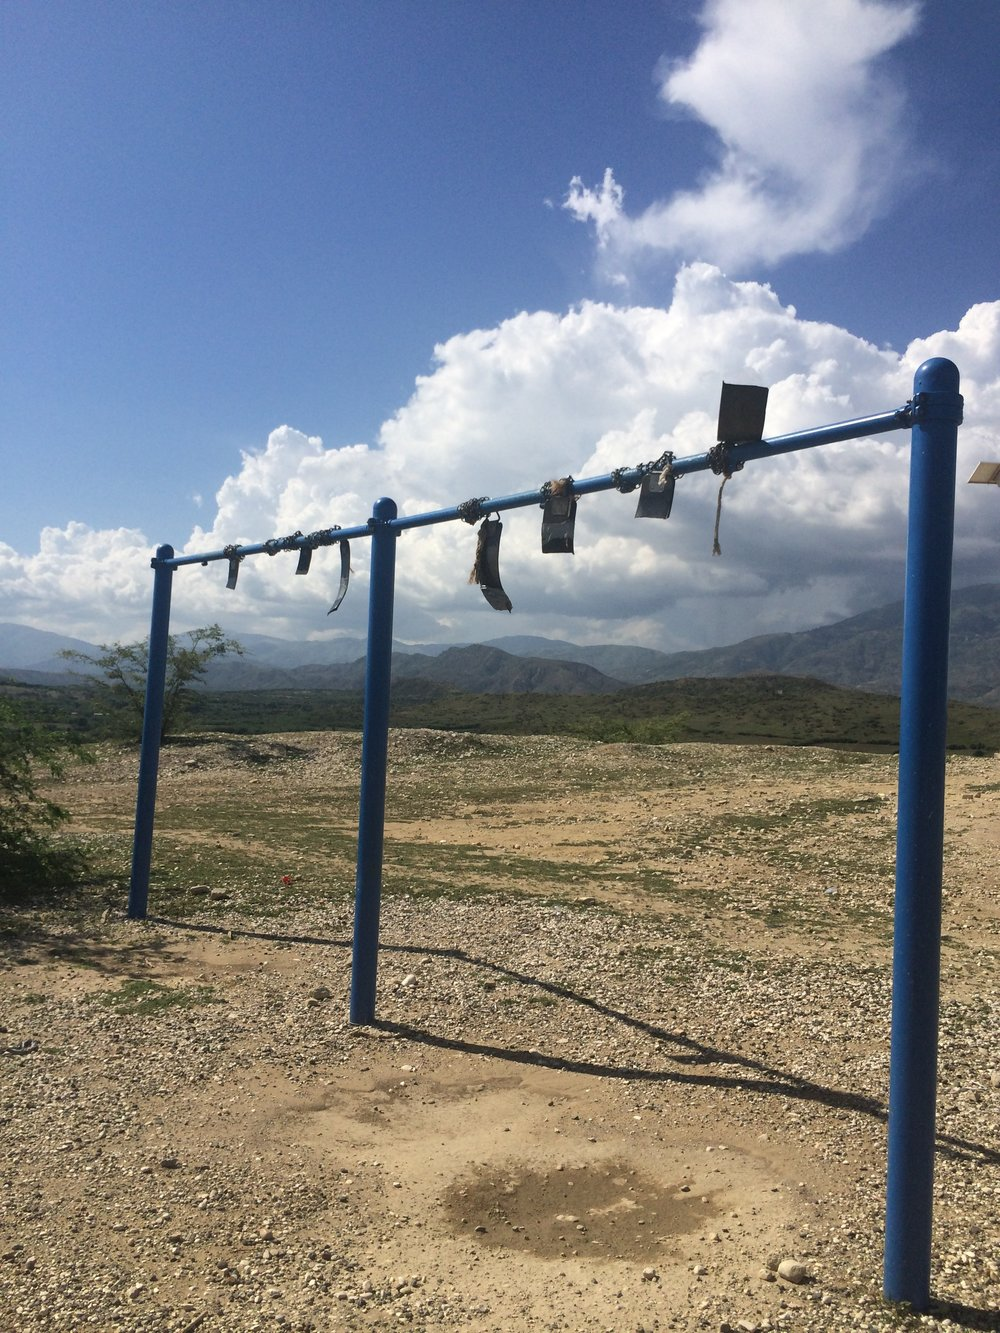 The rubber from this swing set was stolen because people were so desperate. This foreshadowed a much more severe incident months after I left where people stole the nuts and bolts from a bridge, leading to its collapse and the death of three community members.